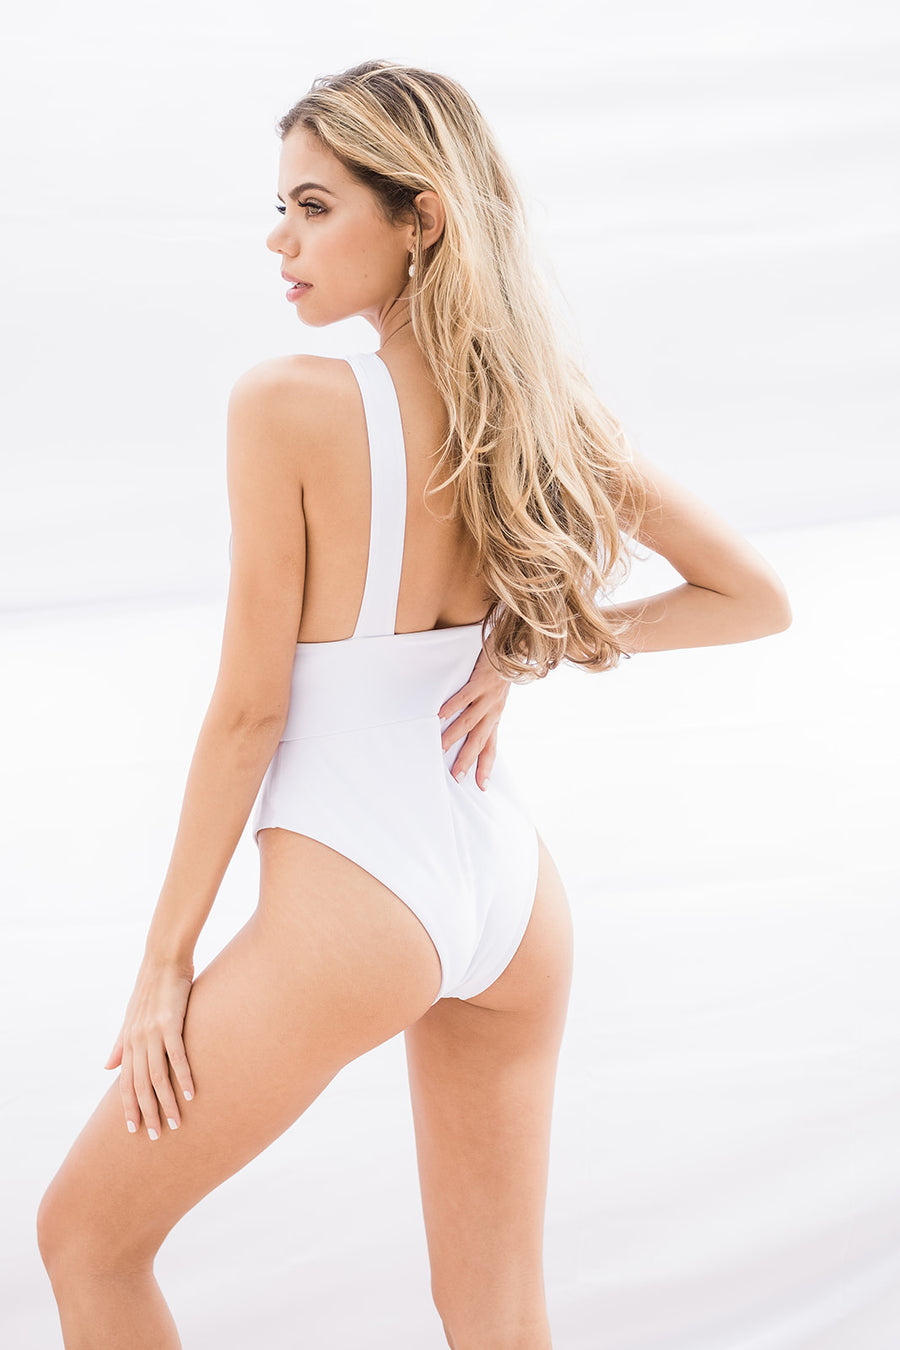 The Miami One Piece Bathing Suit - The Beach Bride by Chic Parisien, a destination for beach weddings, bachelorettes and honeymoons